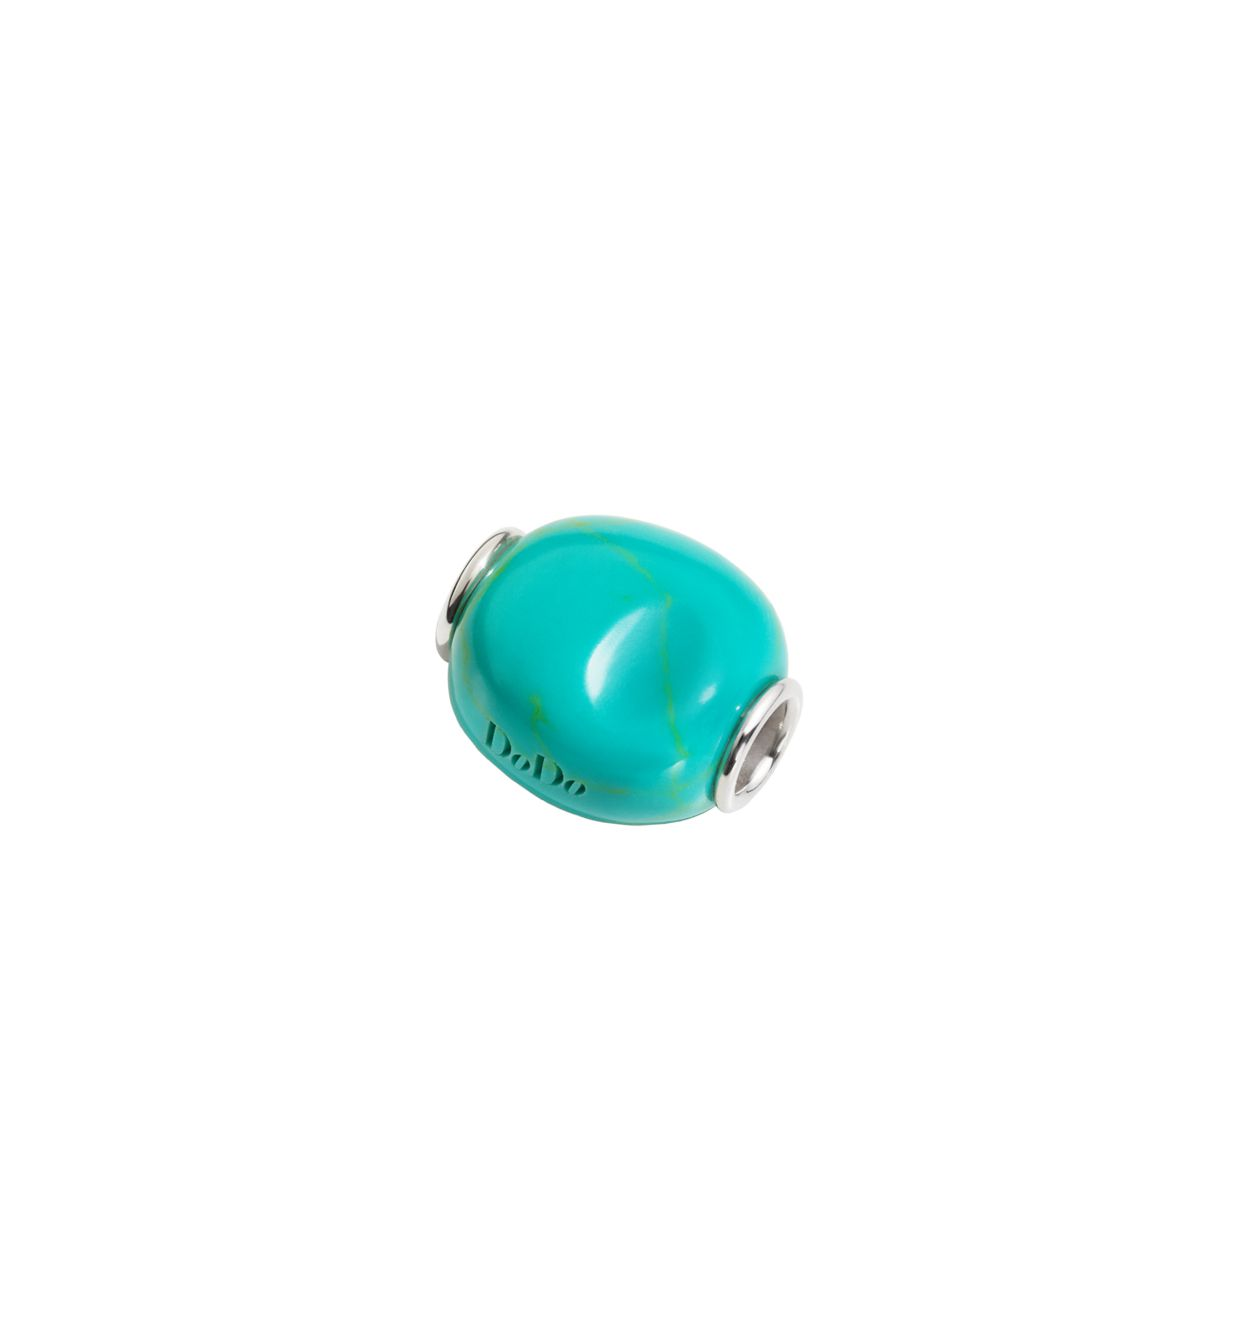 Dodo Nugget in Silver and Turquoise Resin - Orsini Jewellers NZ